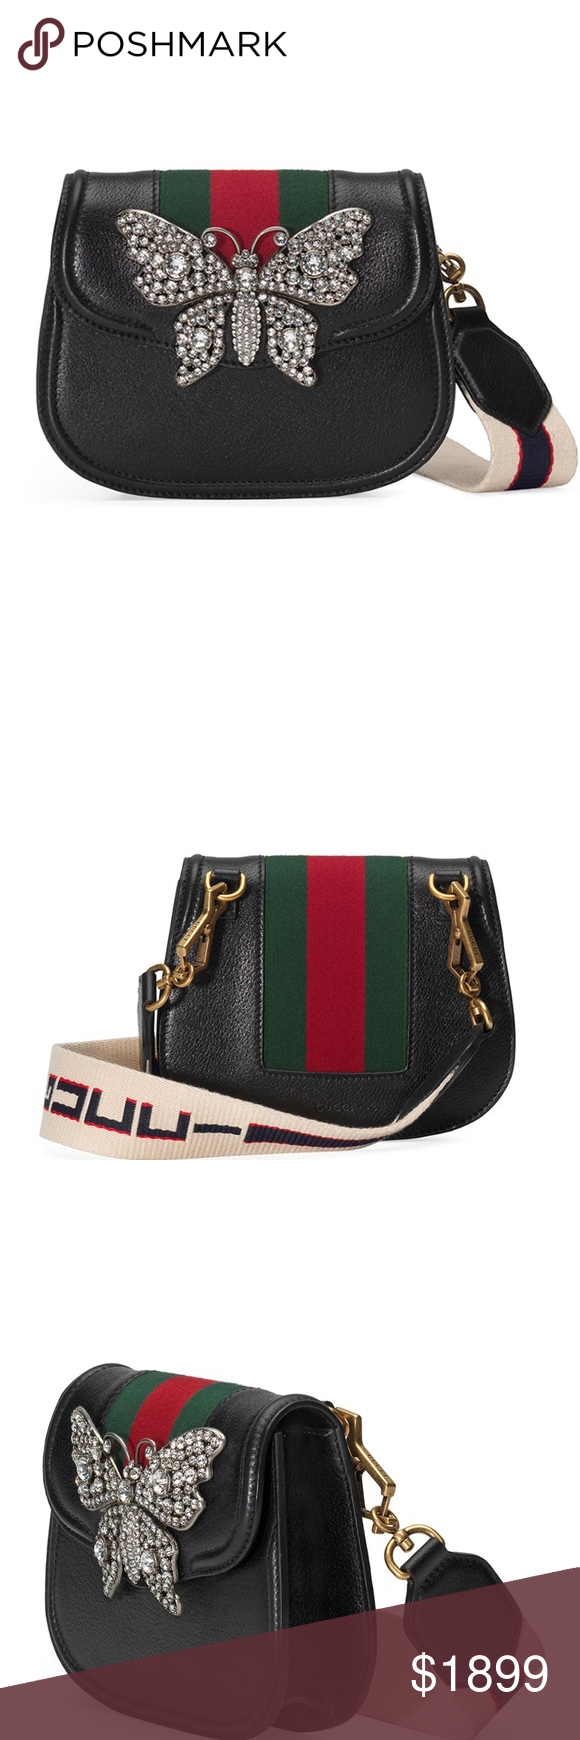 b2b3a403a New Authentic Gucci Linea Totem Crystal Bag New Gucci Linea Totem Small  Leather Shoulder Bag with Crystal Butterfly & Web Strap •Gucci shoulder bag  in calf ...